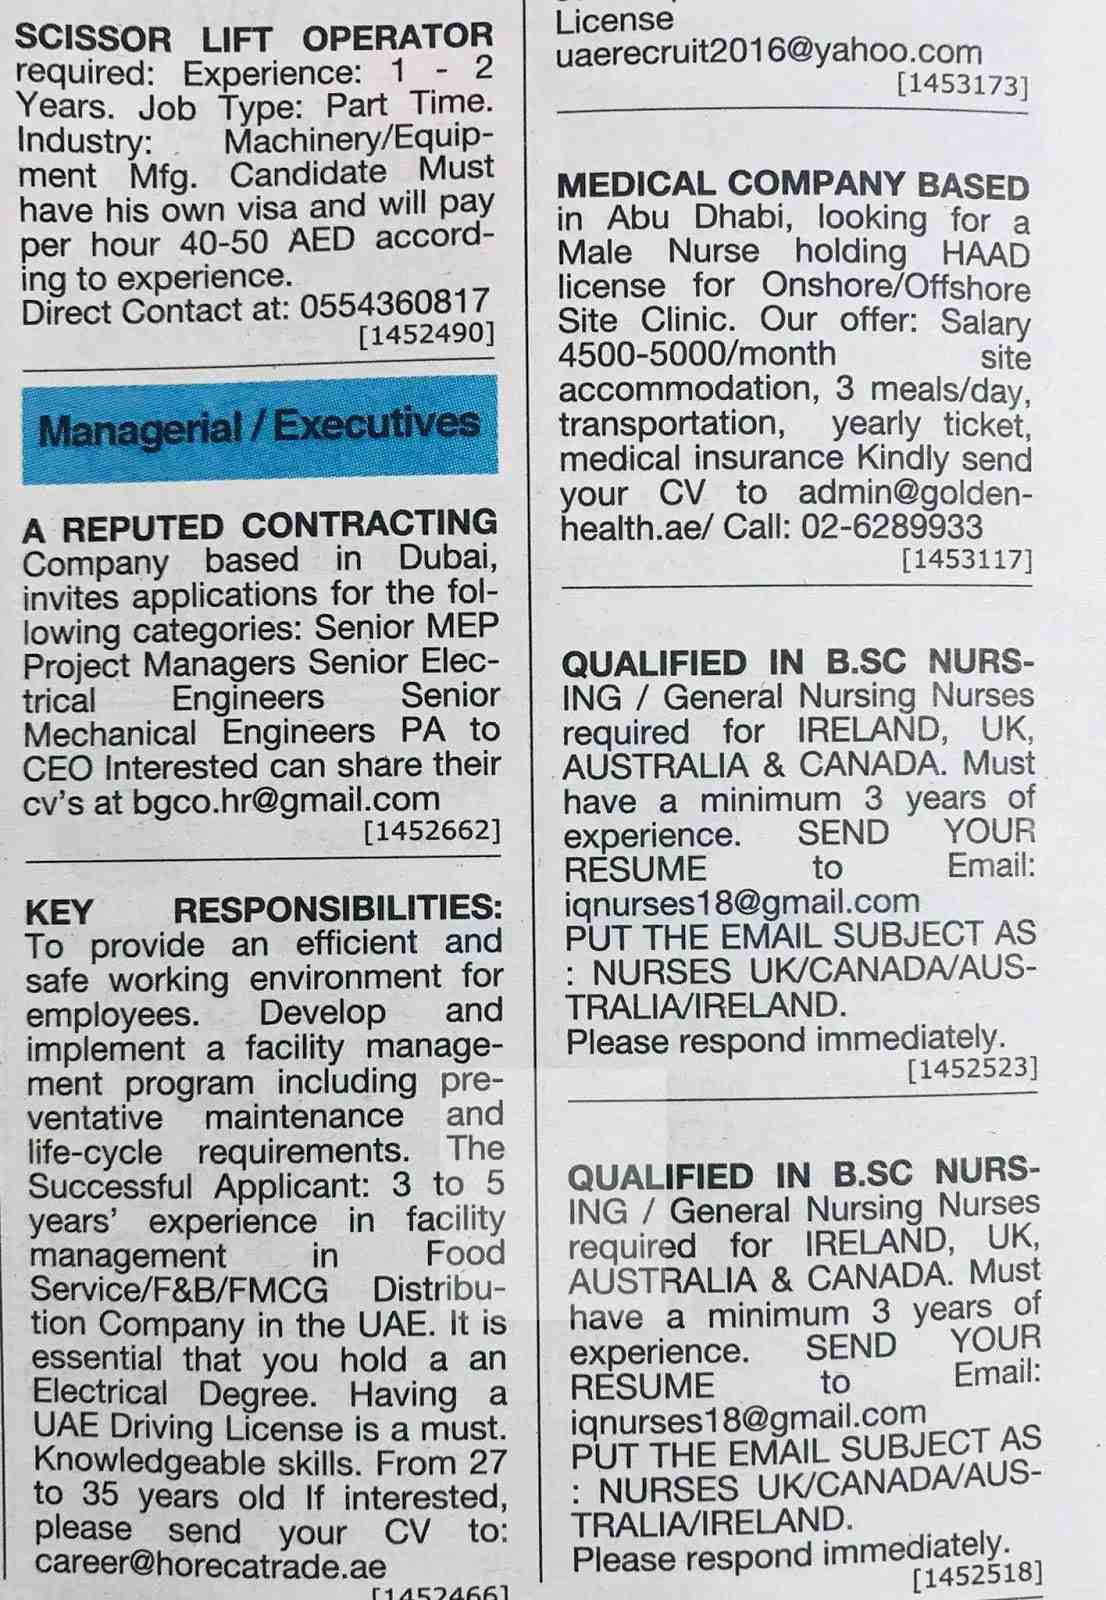 khaleej times jobs uae 18/10/2018 - احداث البلد